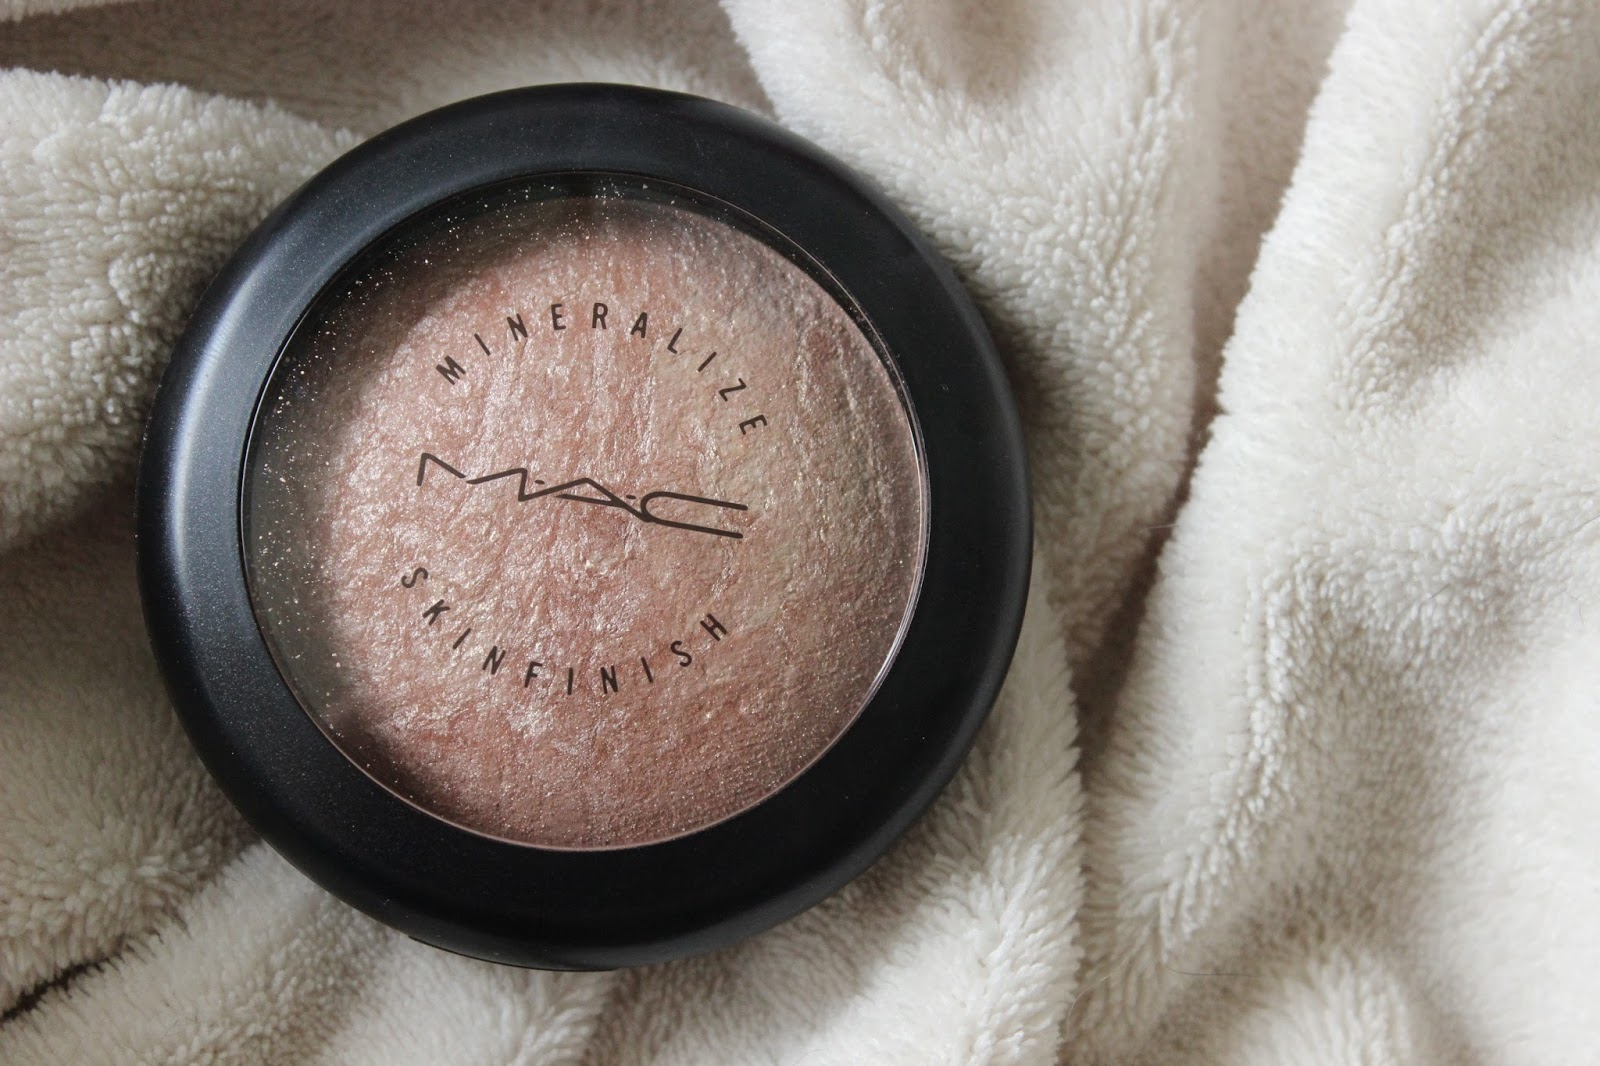 mac-soft-and-gentle-review